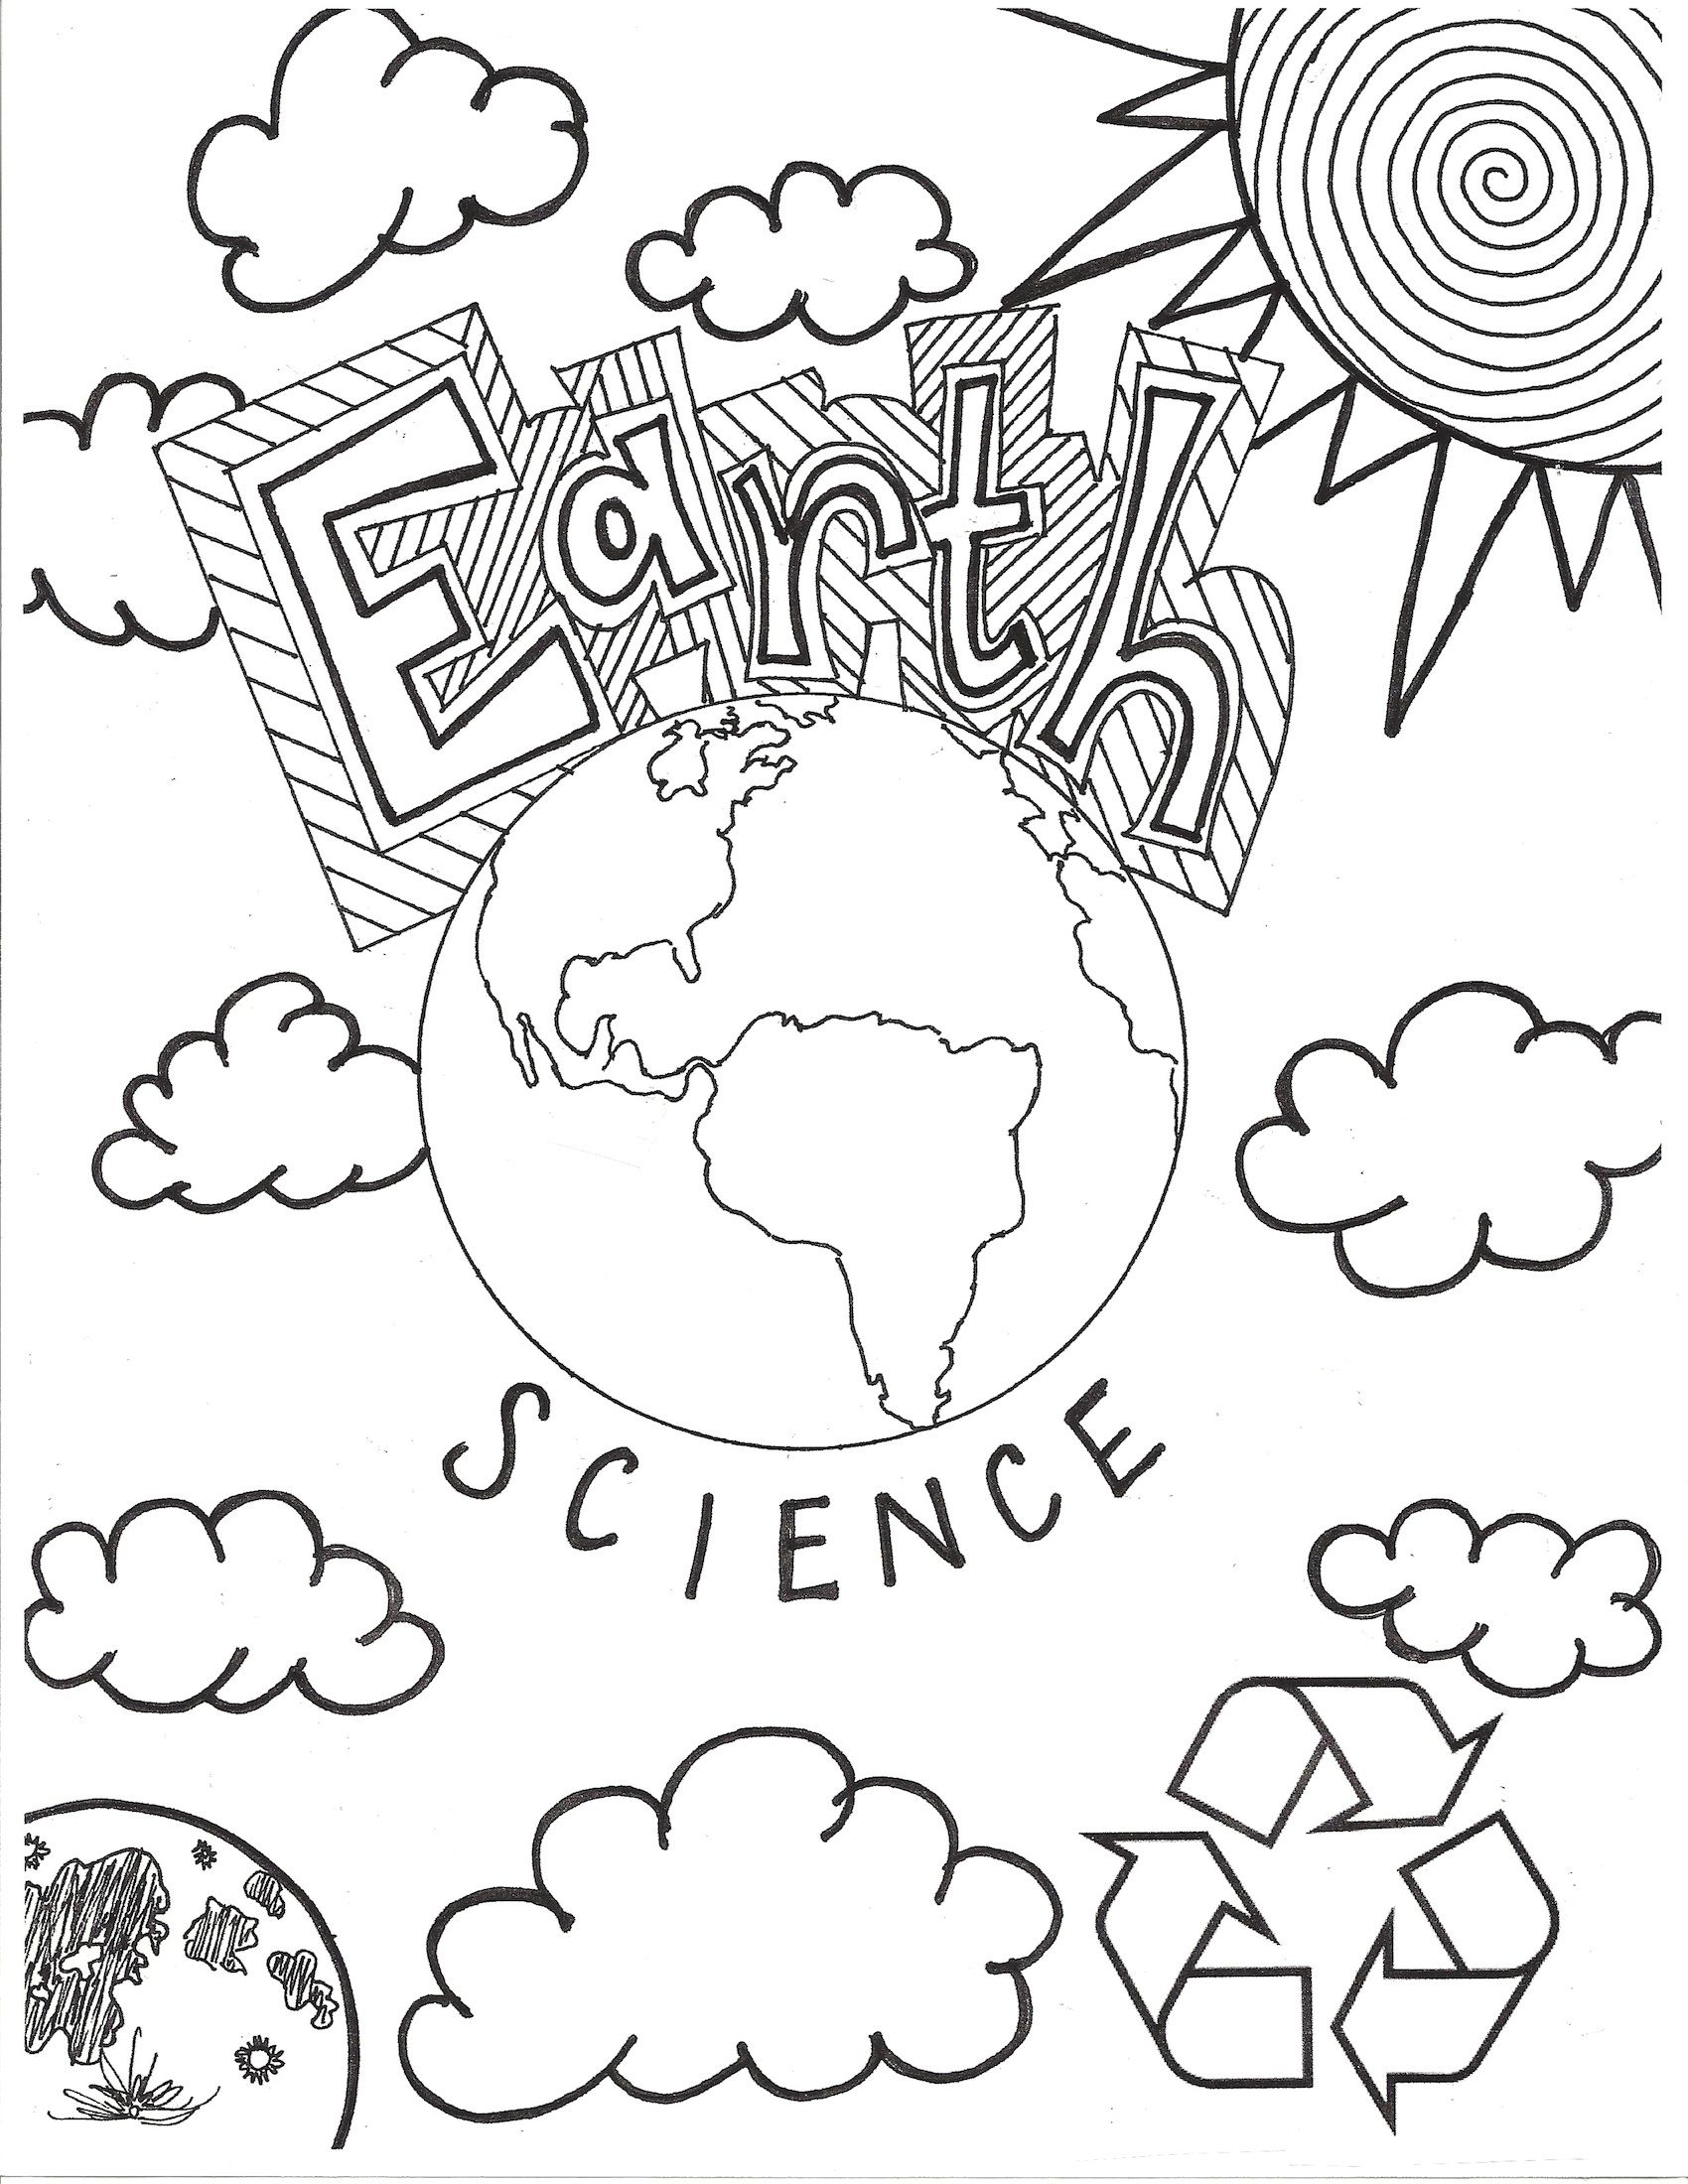 earth science coloring page cover page middle school teaching